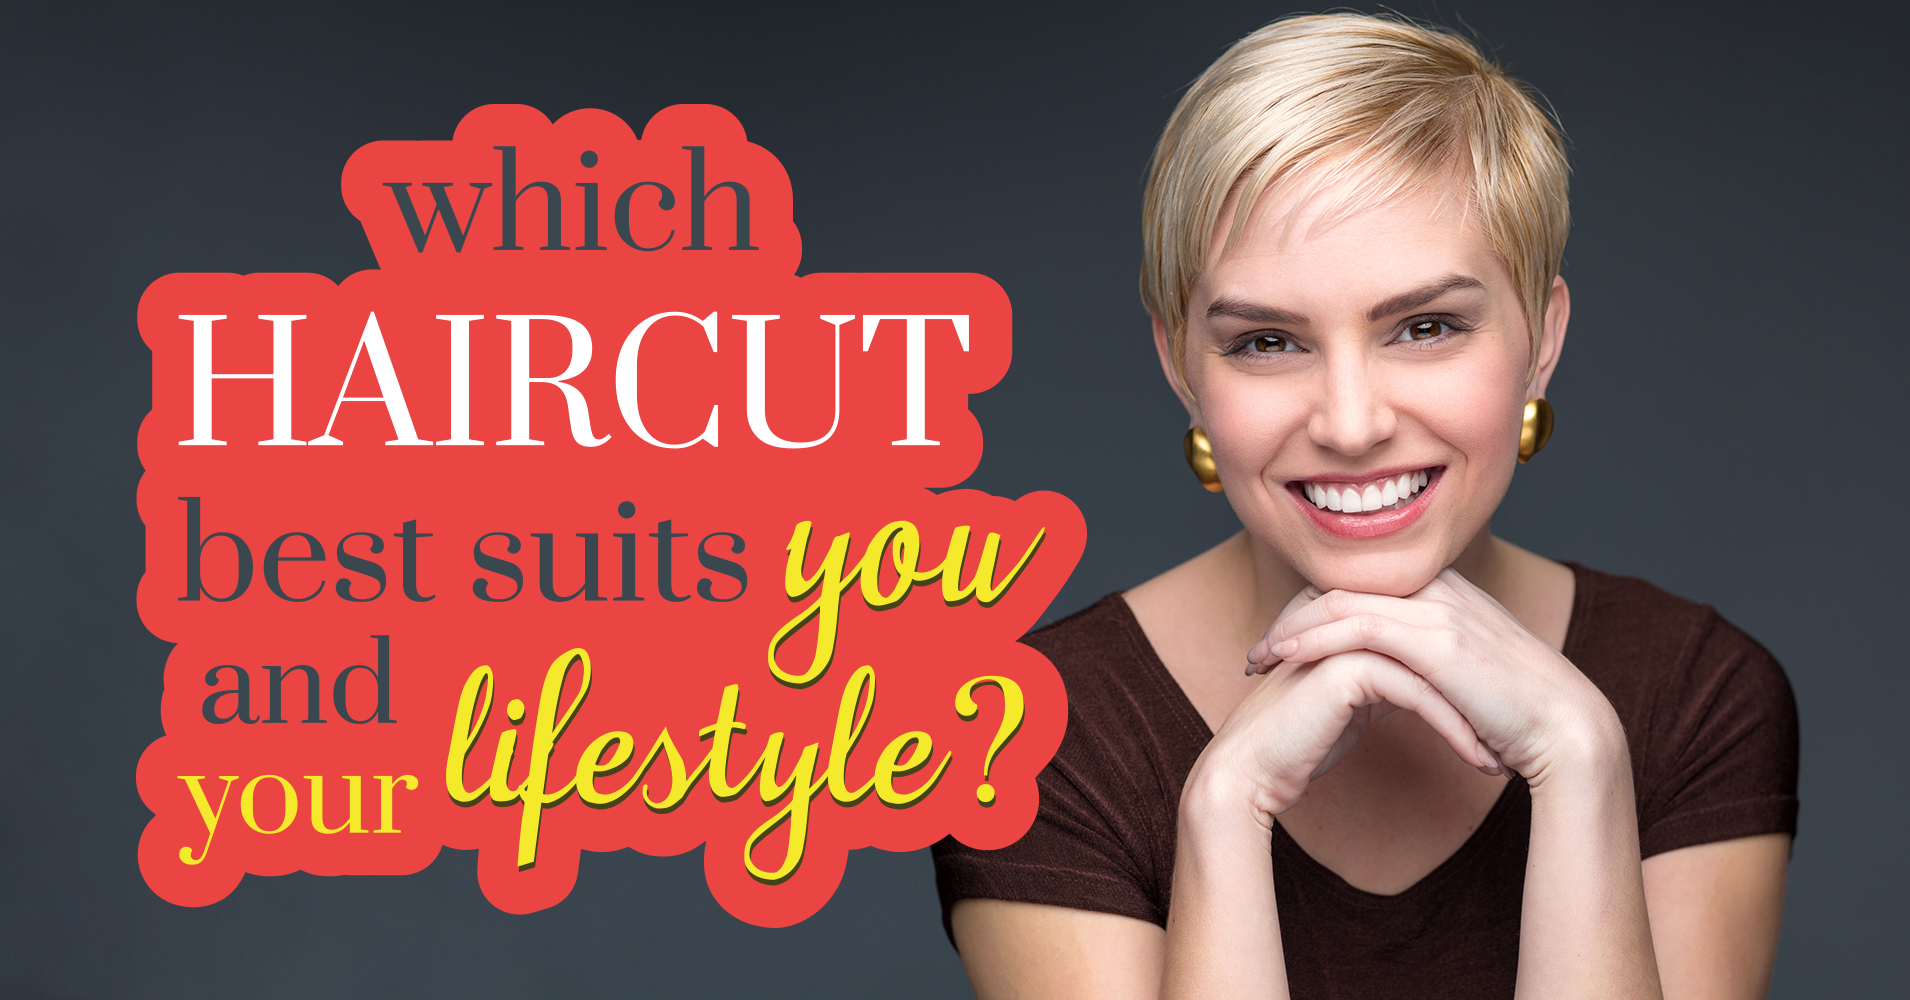 which haircut best suits you and your lifestyle? - quiz - quizony